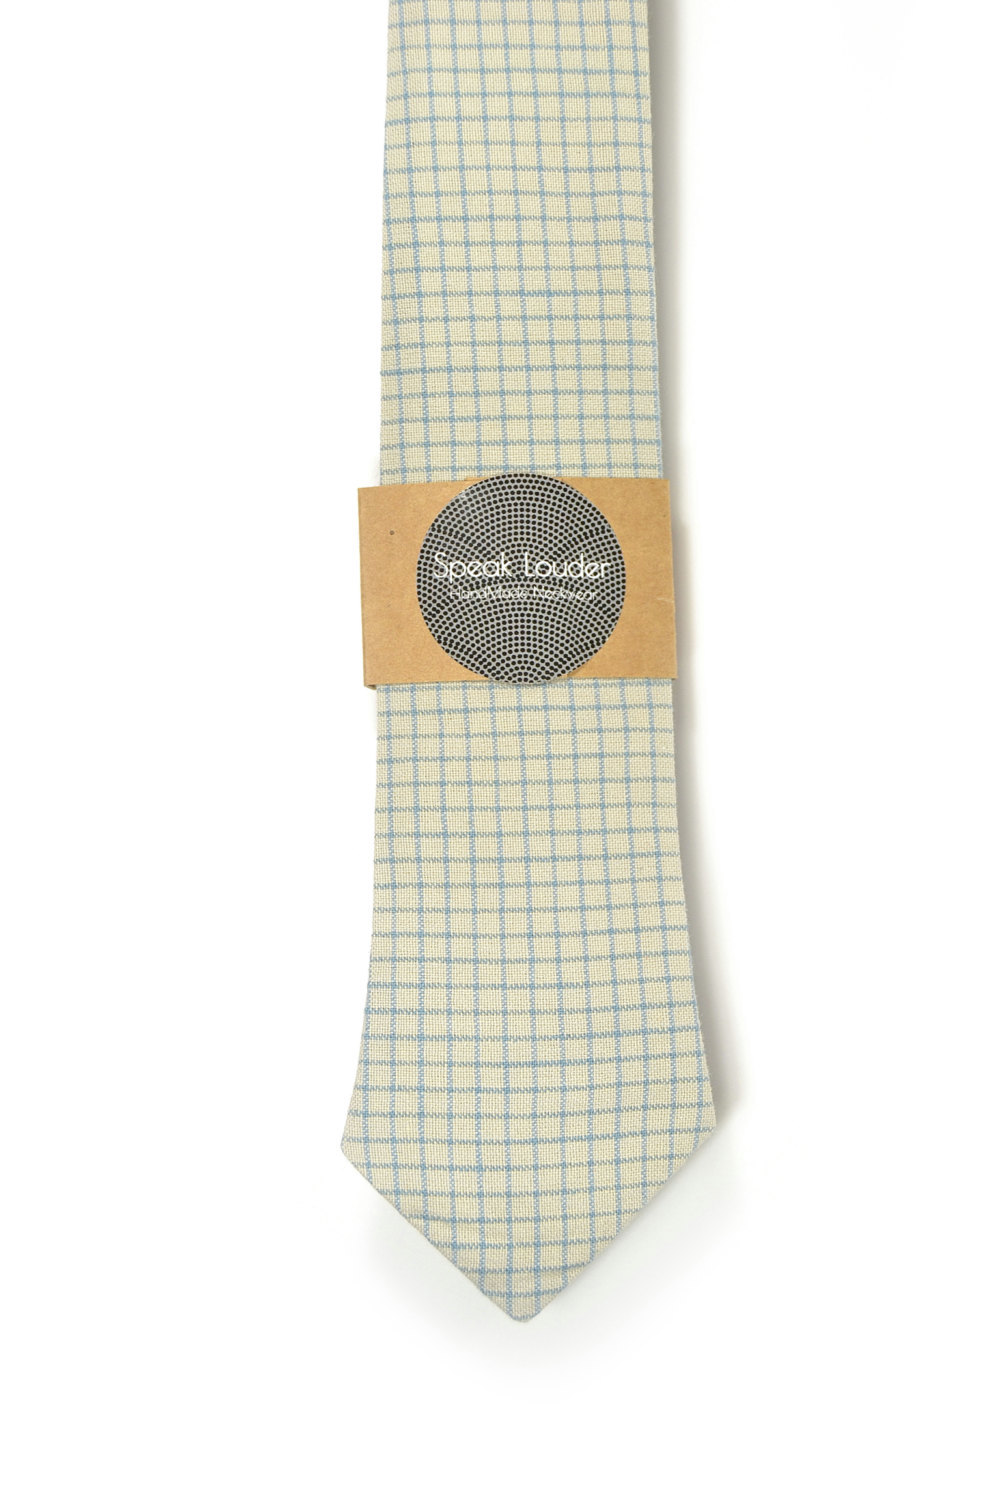 Cream blue check necktie - Wedding Mens Tie Skinny Necktie - Laid-Back necktie image 2